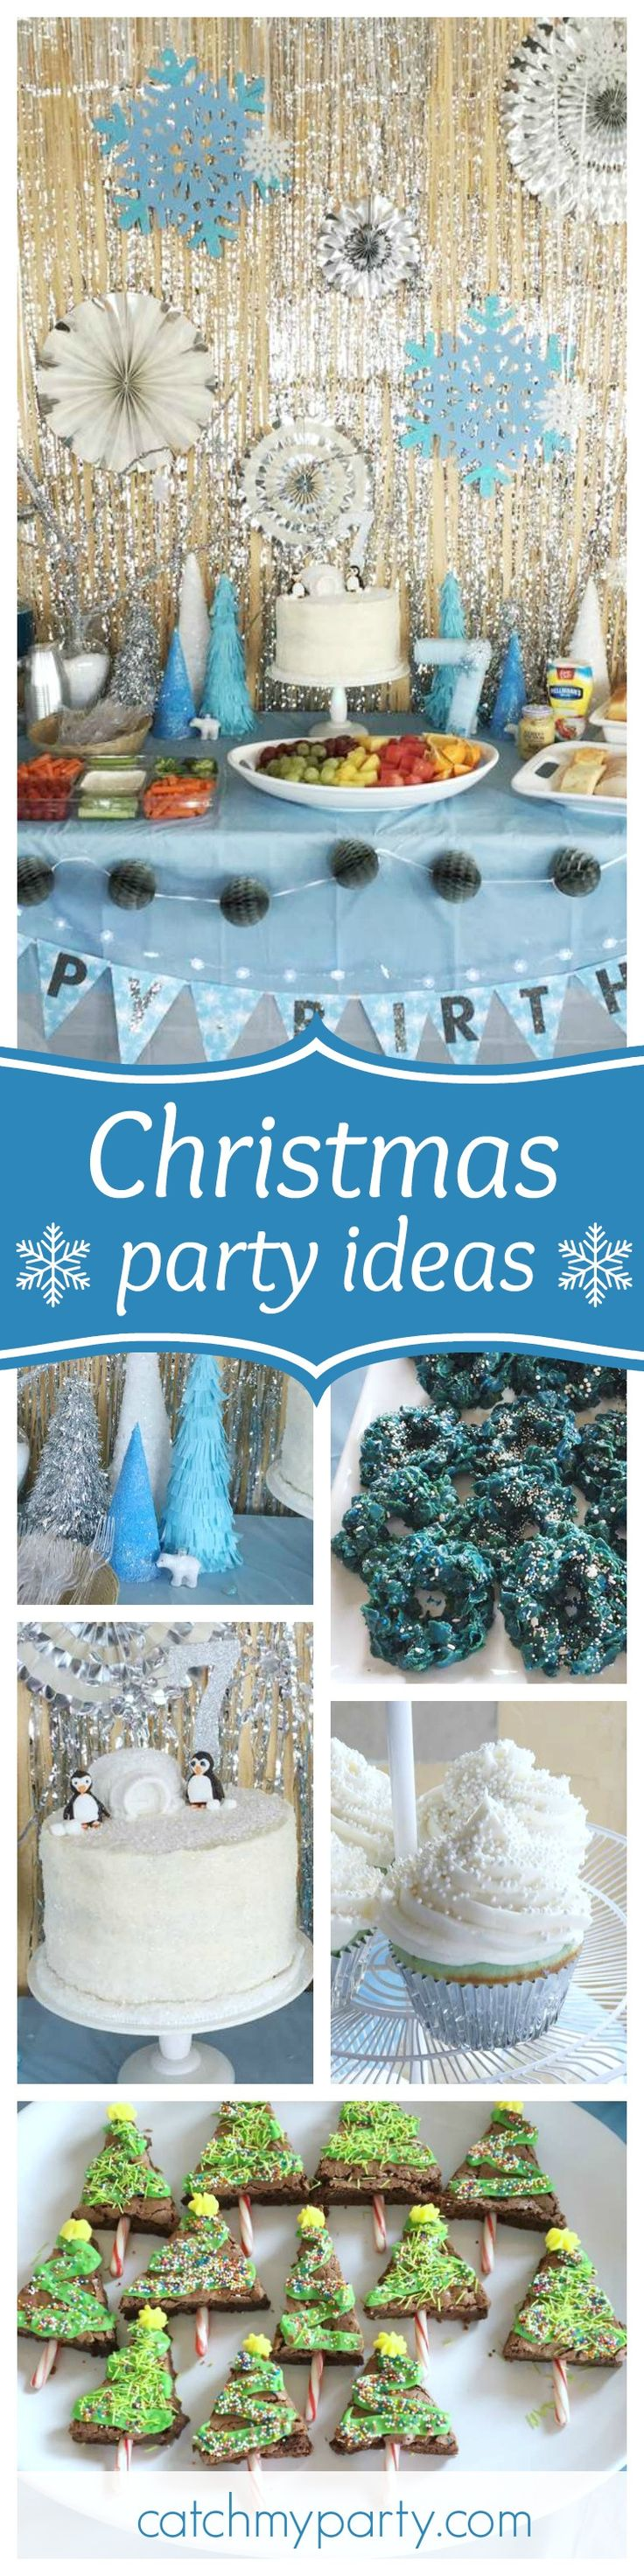 Check out this gorgeous Winter Wonderland birthday party. Love the cupcakes with snowflake toppers! See more party ideas and share yours at CatchMyParty.com